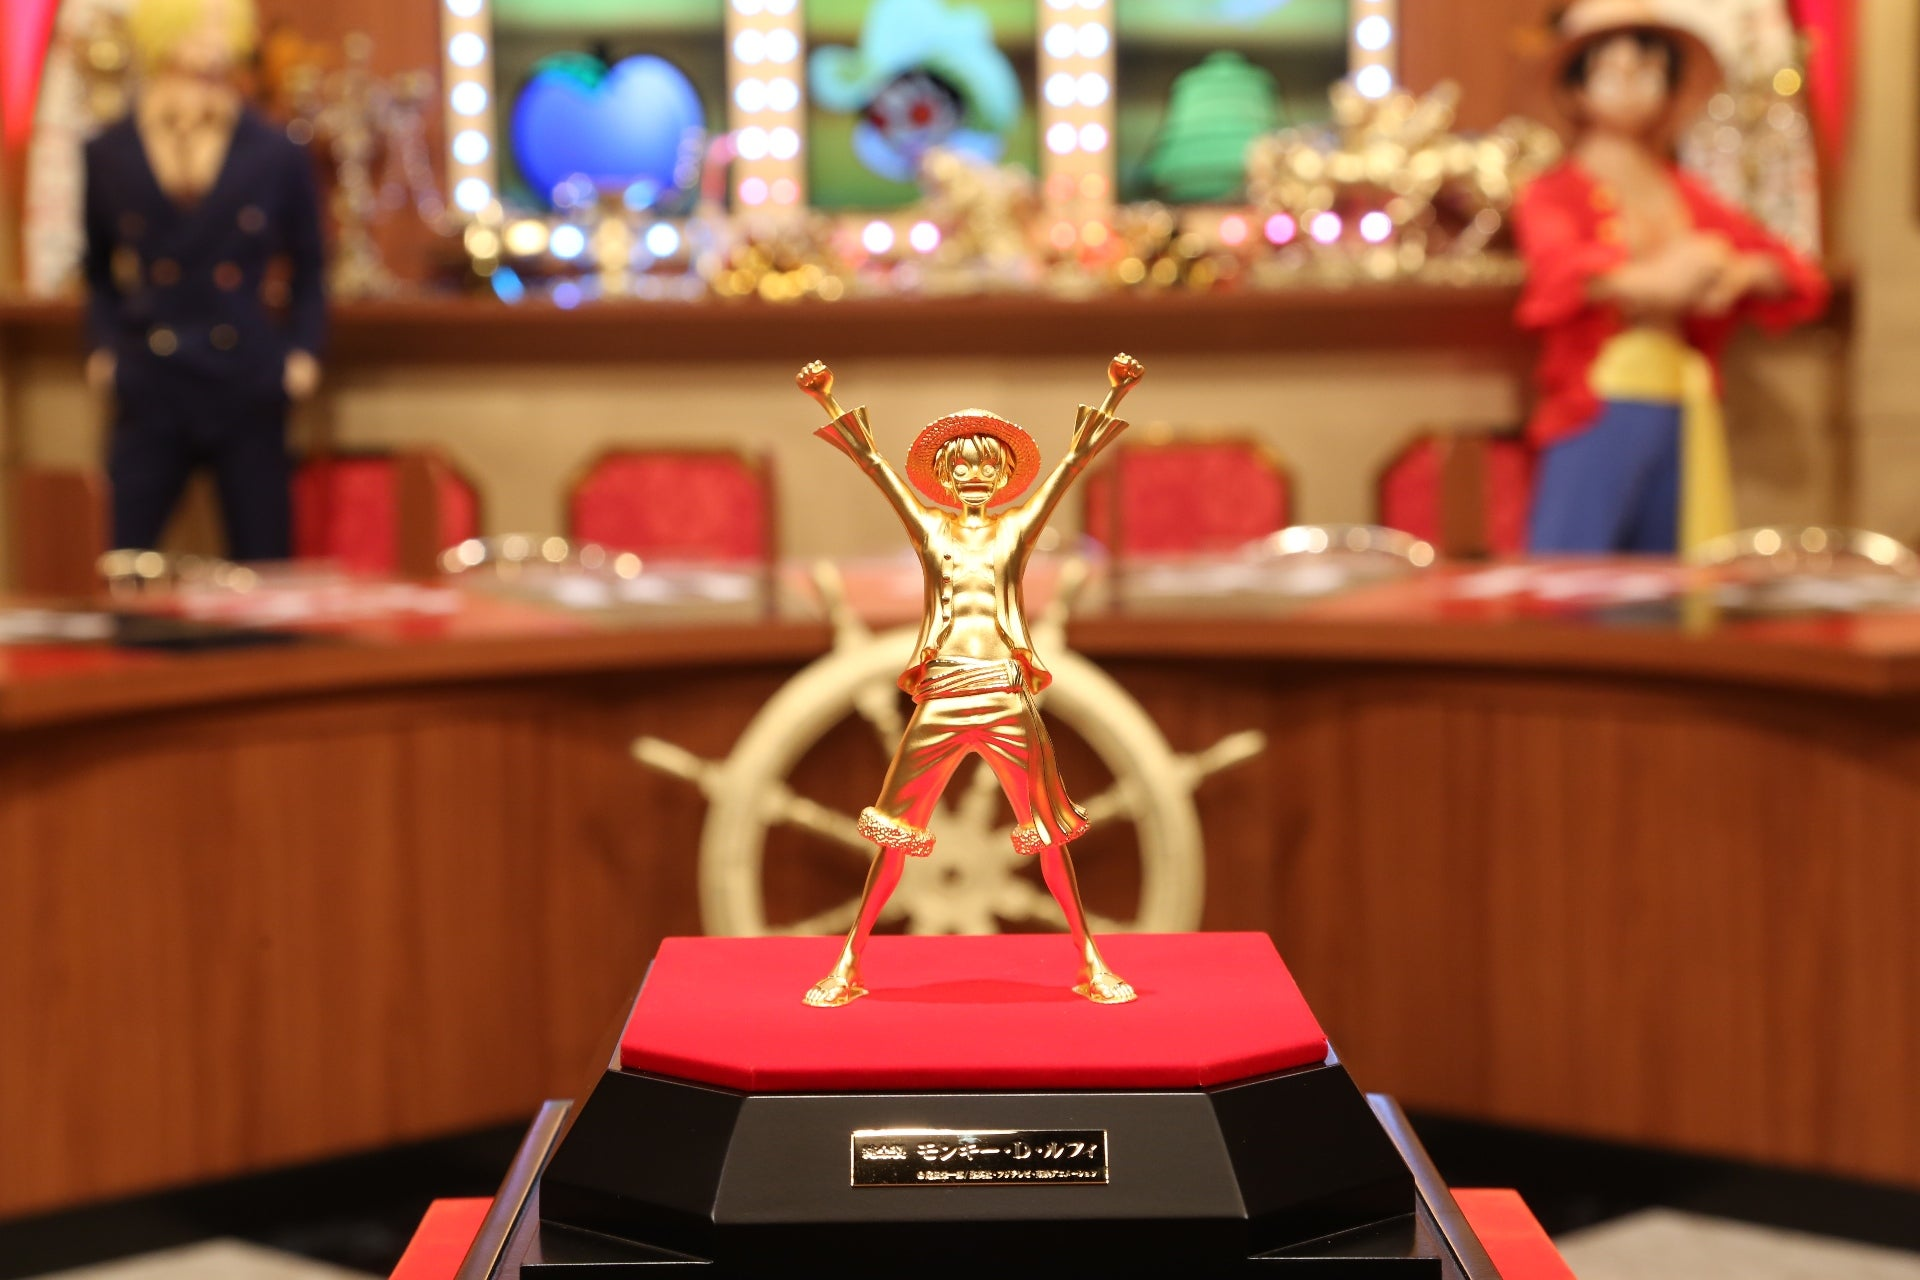 Golden One Piece Statue Costs $250,000